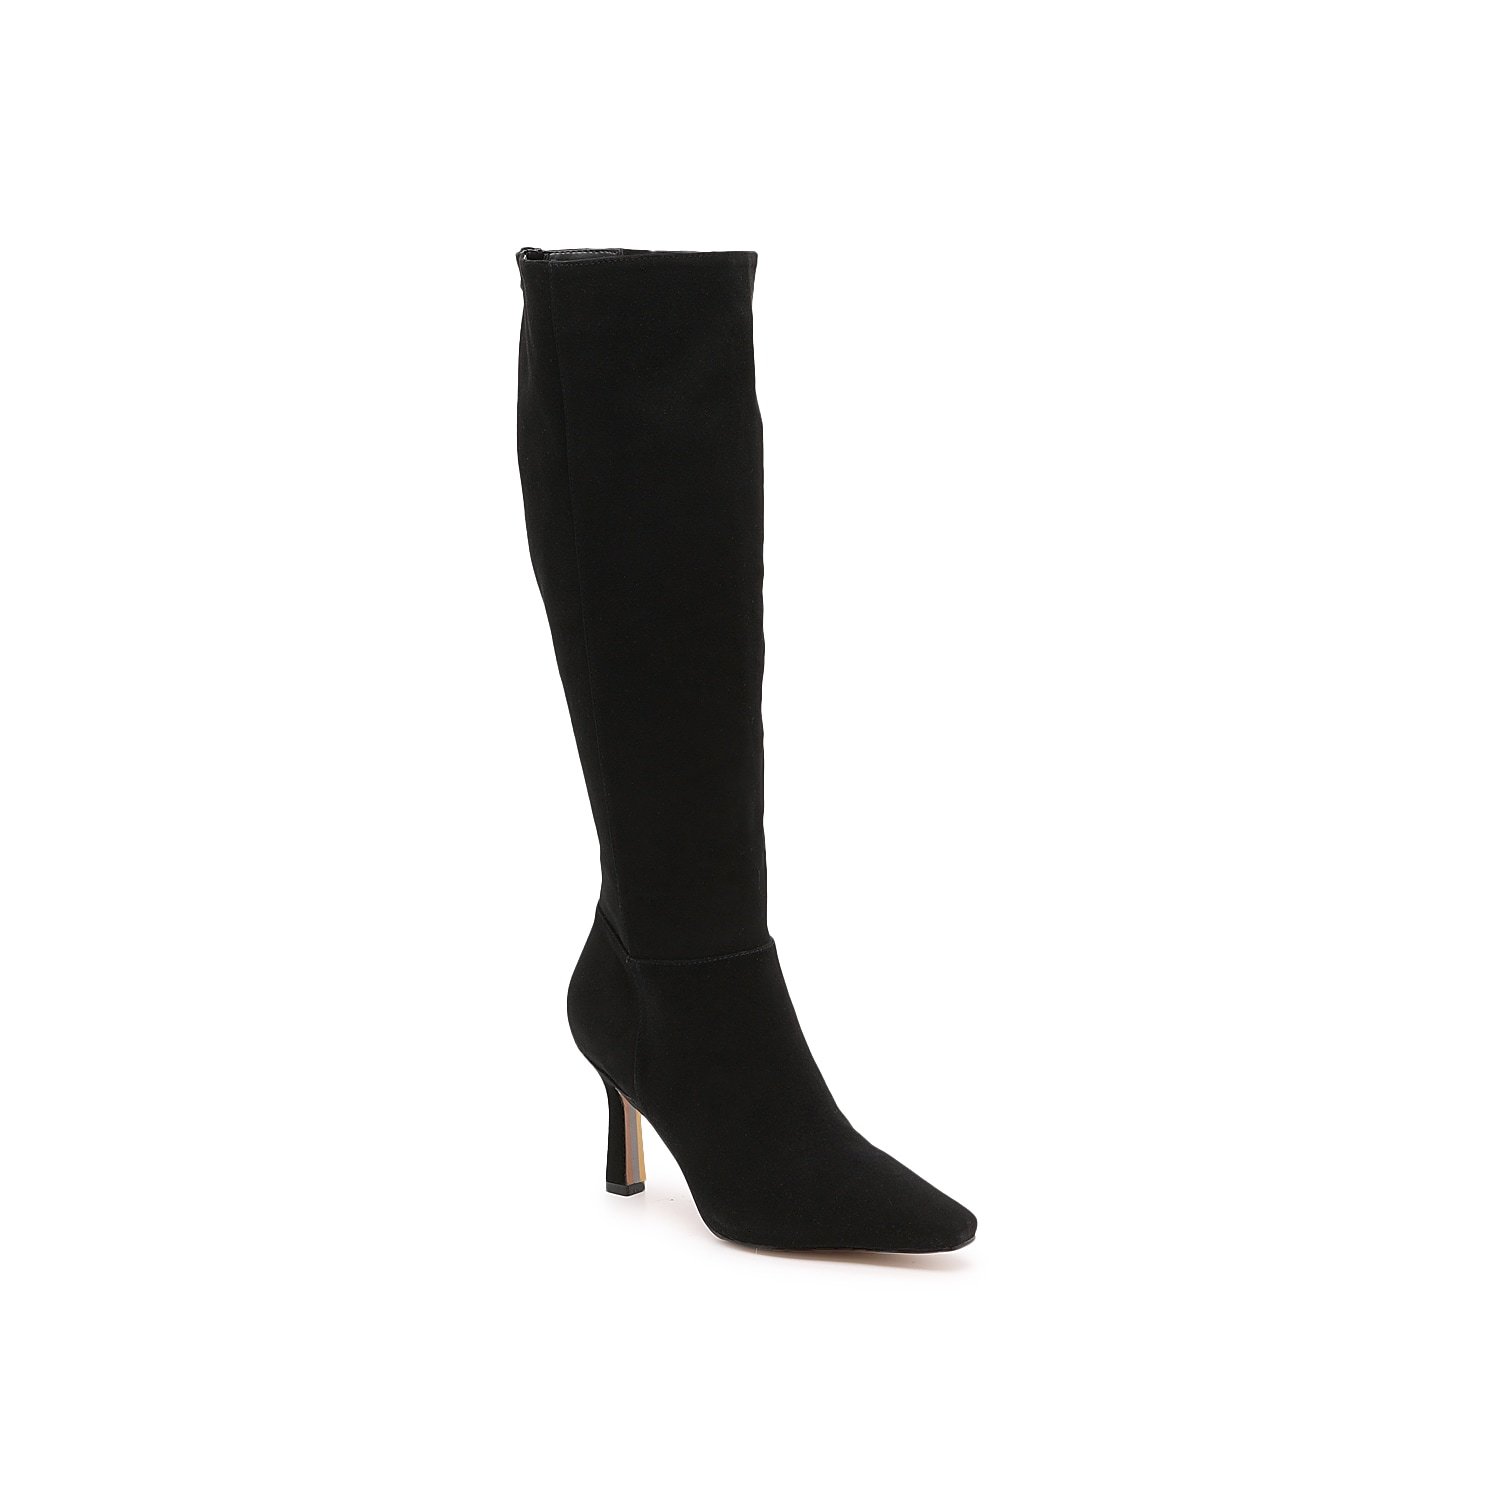 With leg-hugging curves and shapely kitten-style heel, the Davin boots from Sam Edelman dress up your tall boots collection. An almond toe mimics the elegant shape. Click here for Boot Measuring Guide.